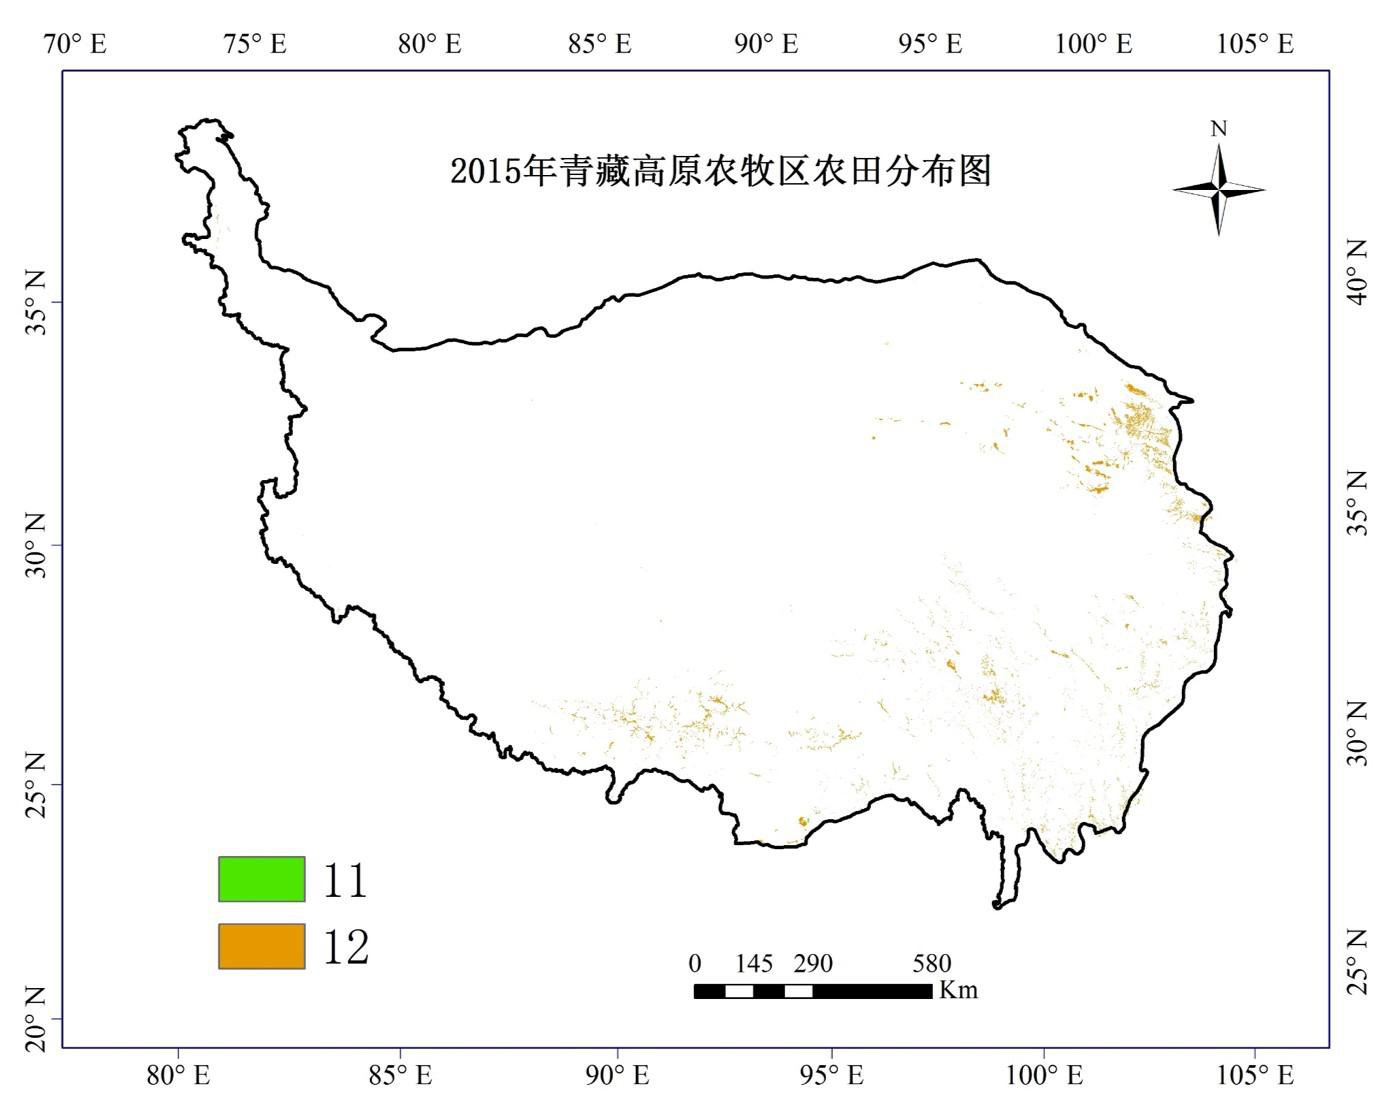 30 m grid data of farmland distribution in agricultural and pastoral areas of the Qinghai-Tibet Plateau in 2015